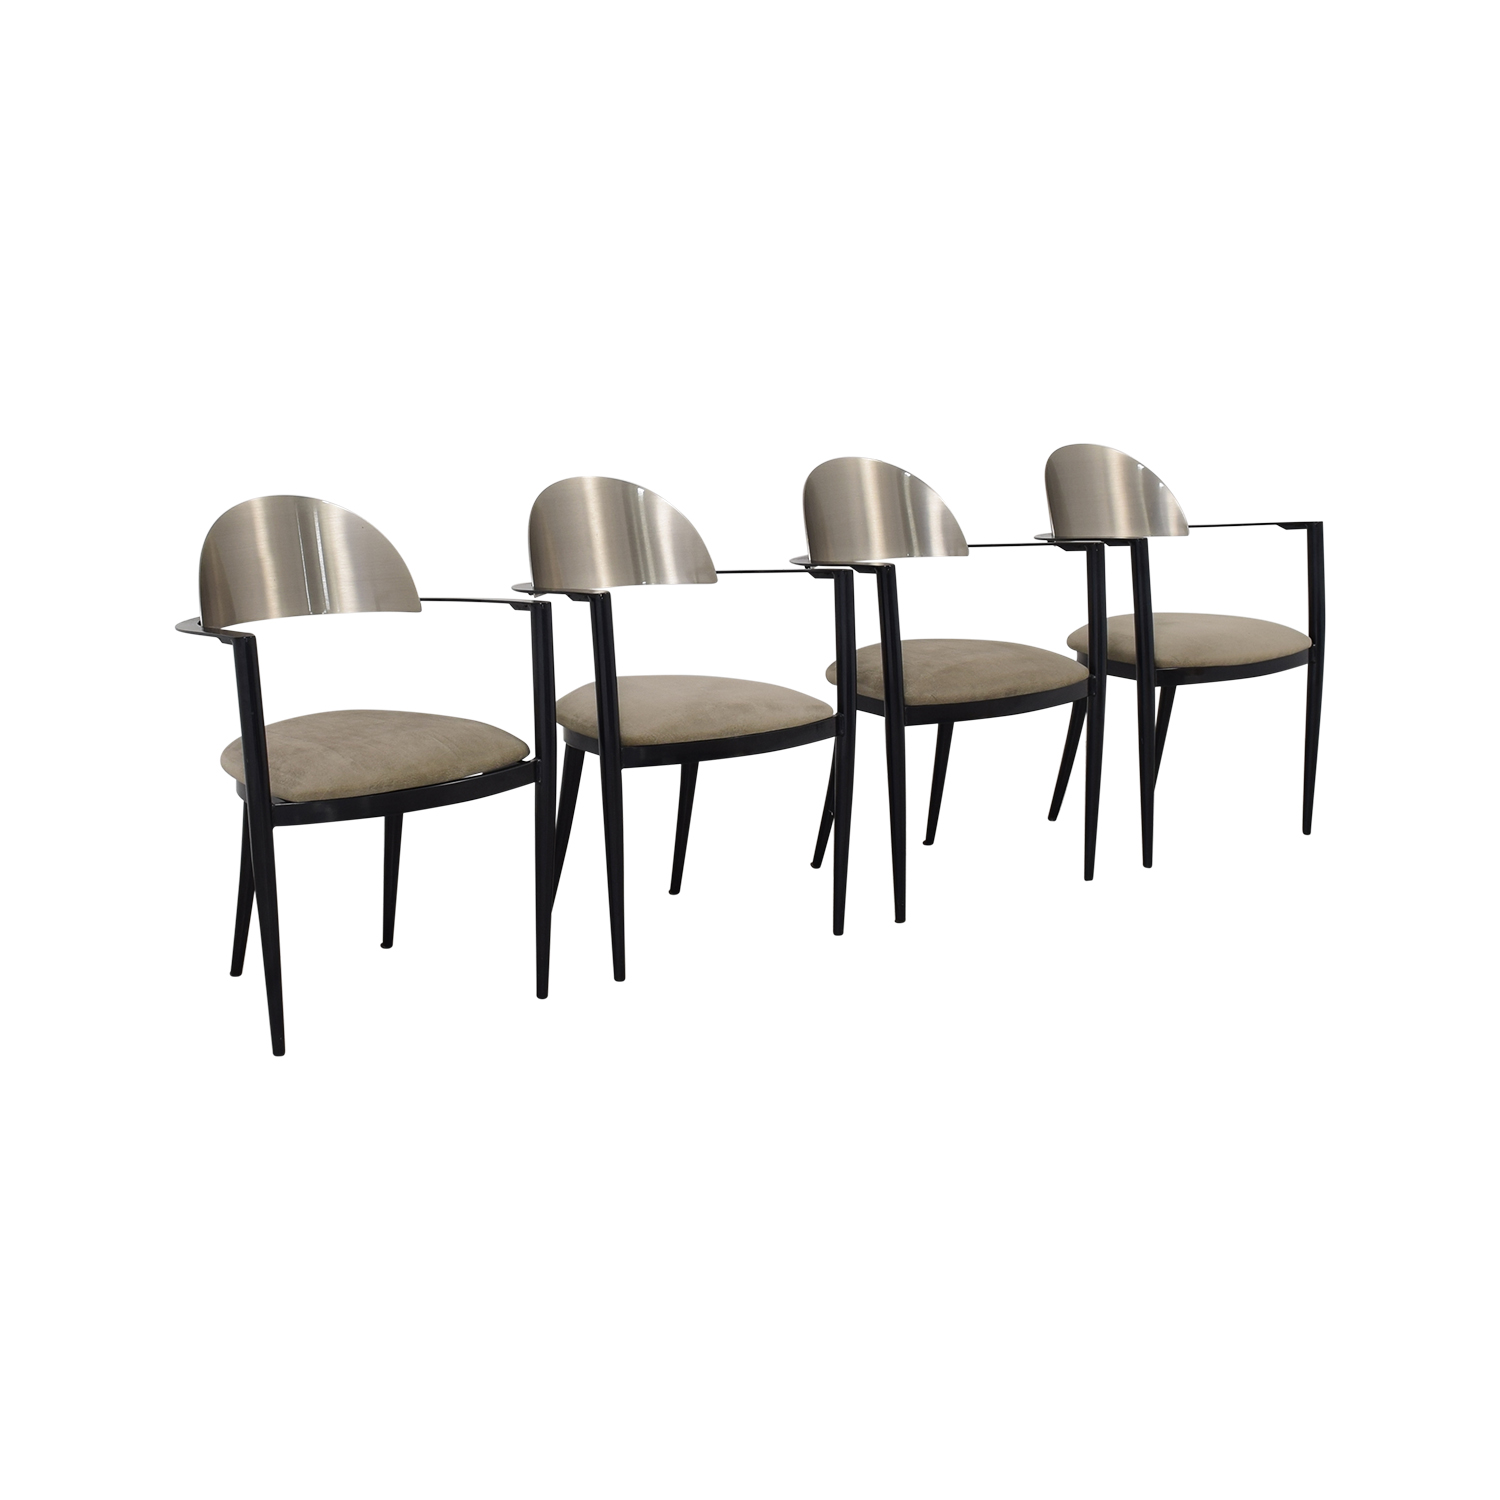 Chrome and Beige Upholstered Dining Chairs on sale